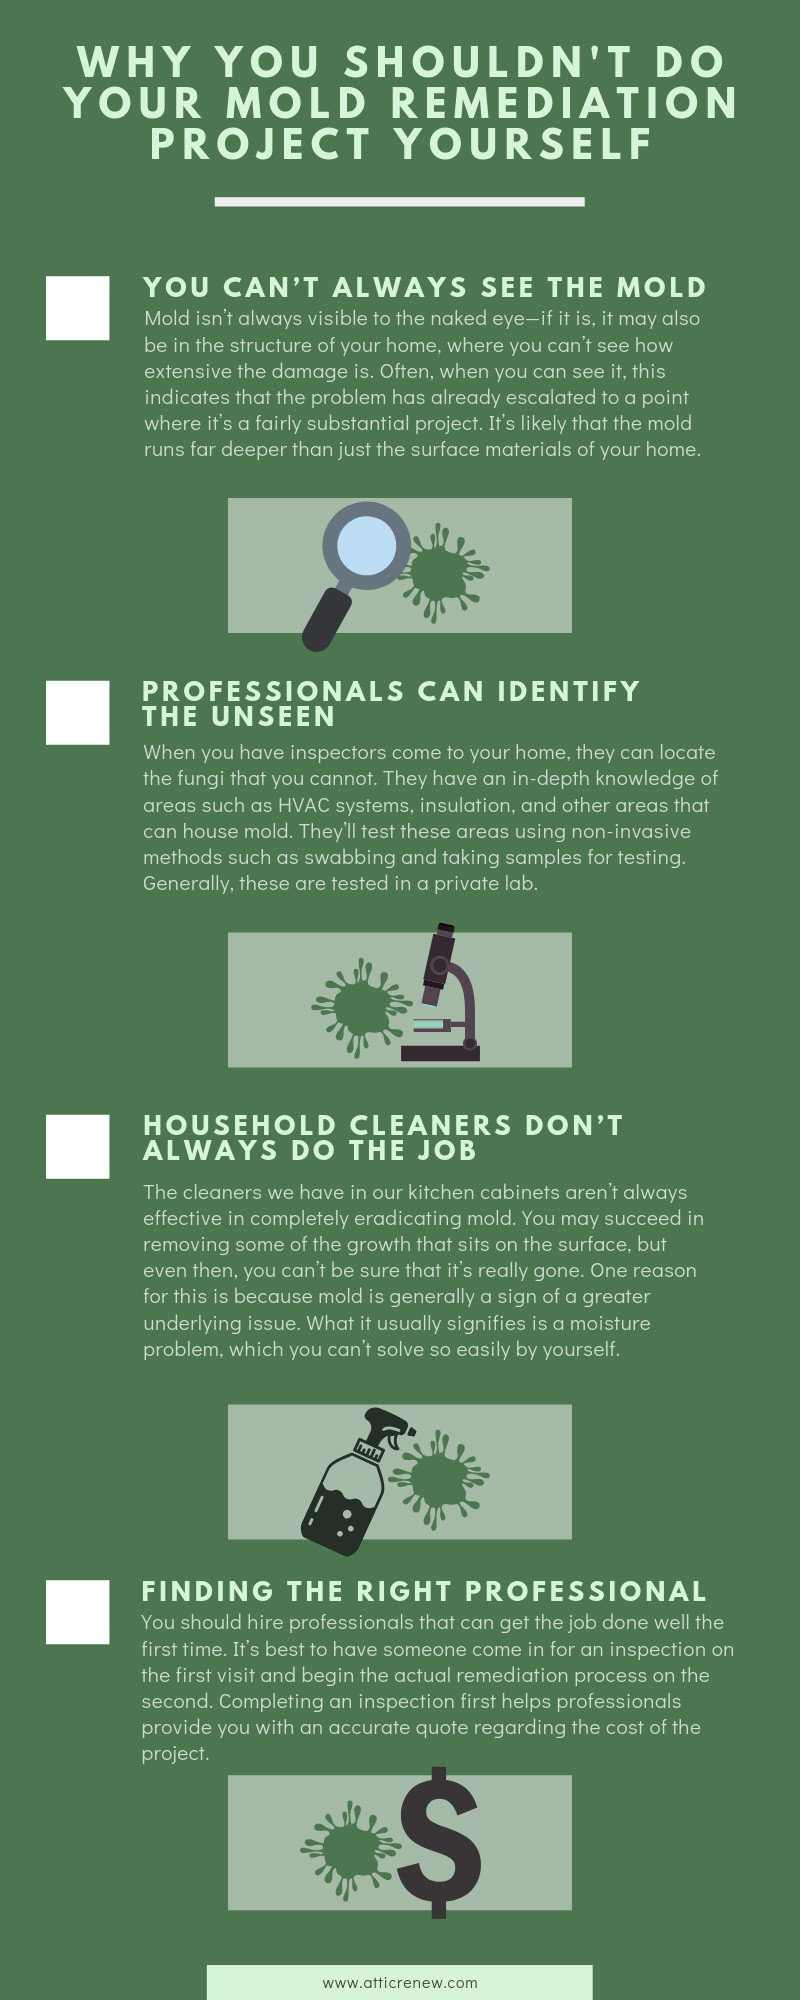 Why You Shouldn't Do Your Mold Remediation Project Yourself infographic